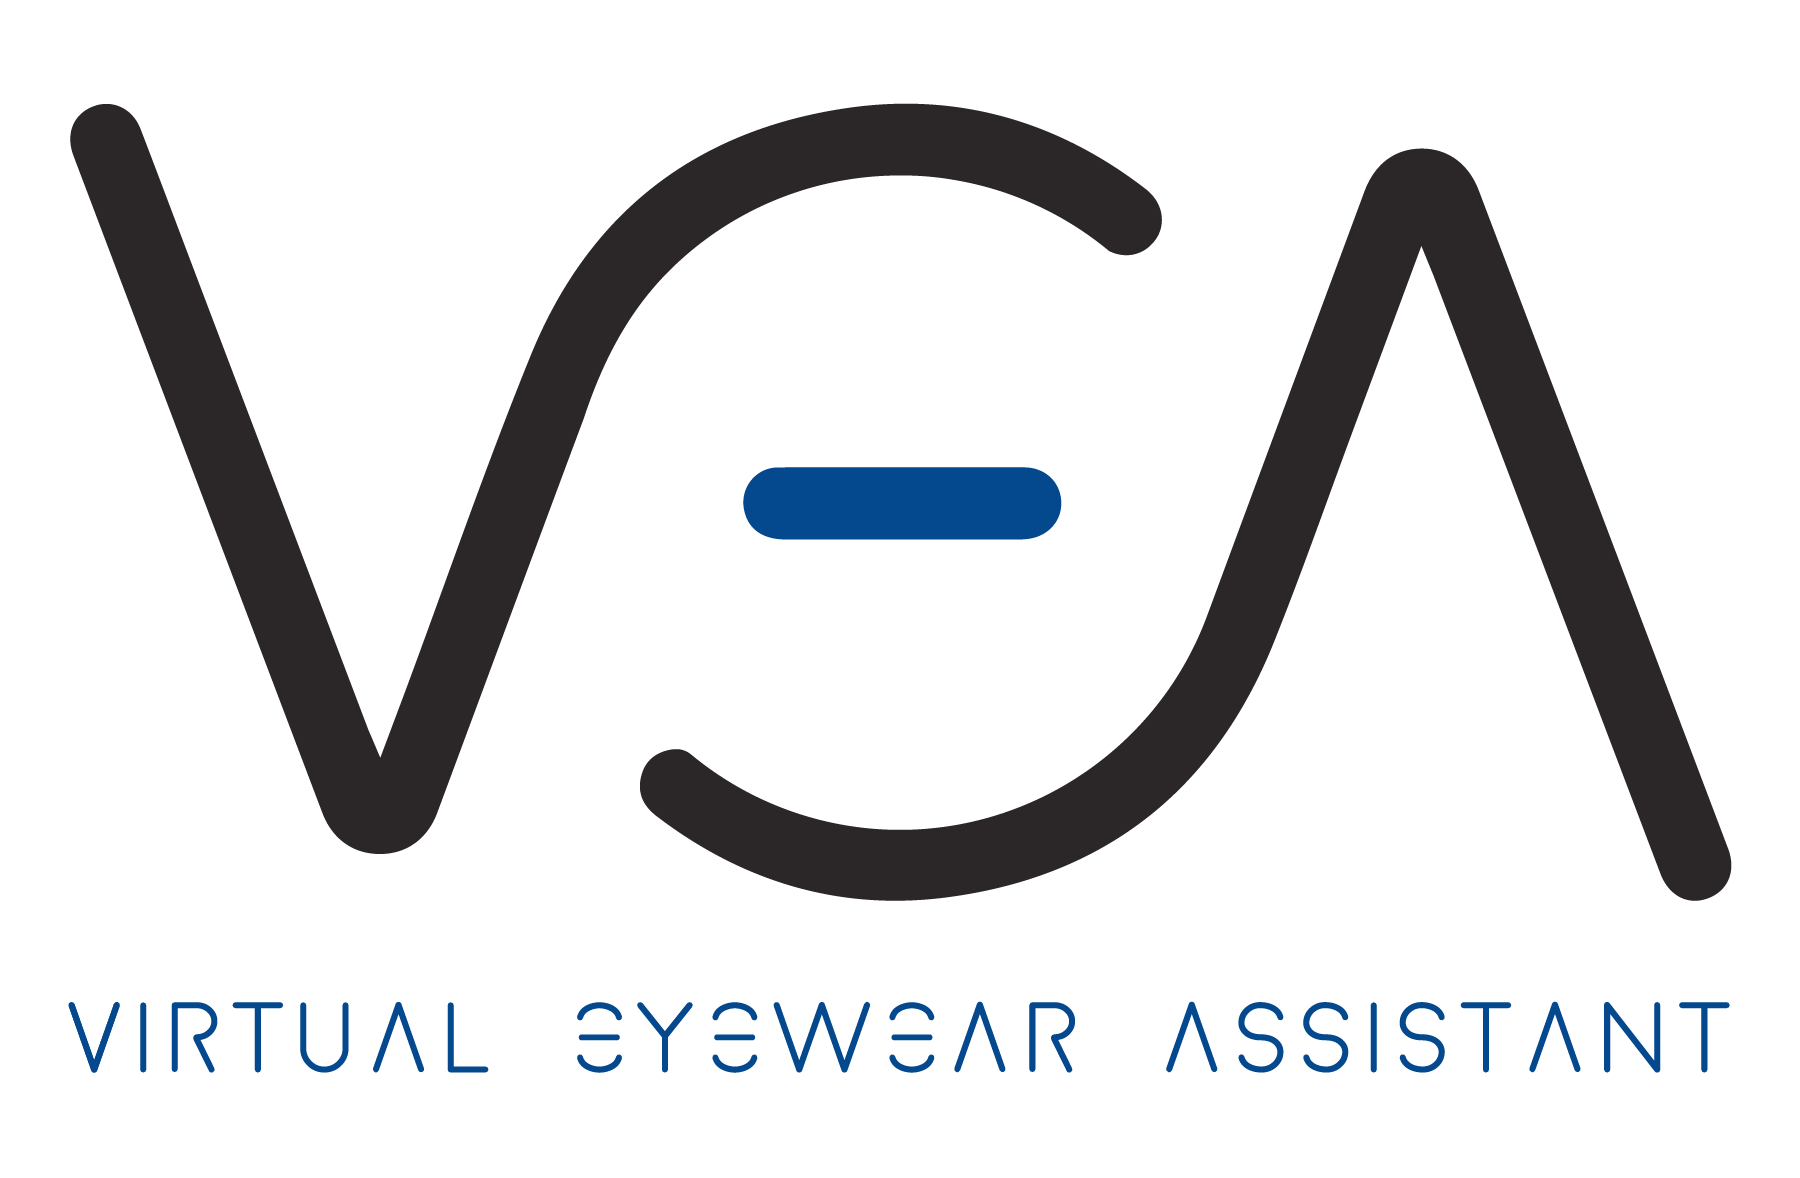 V.E.A Virtual Eyewear Assistant